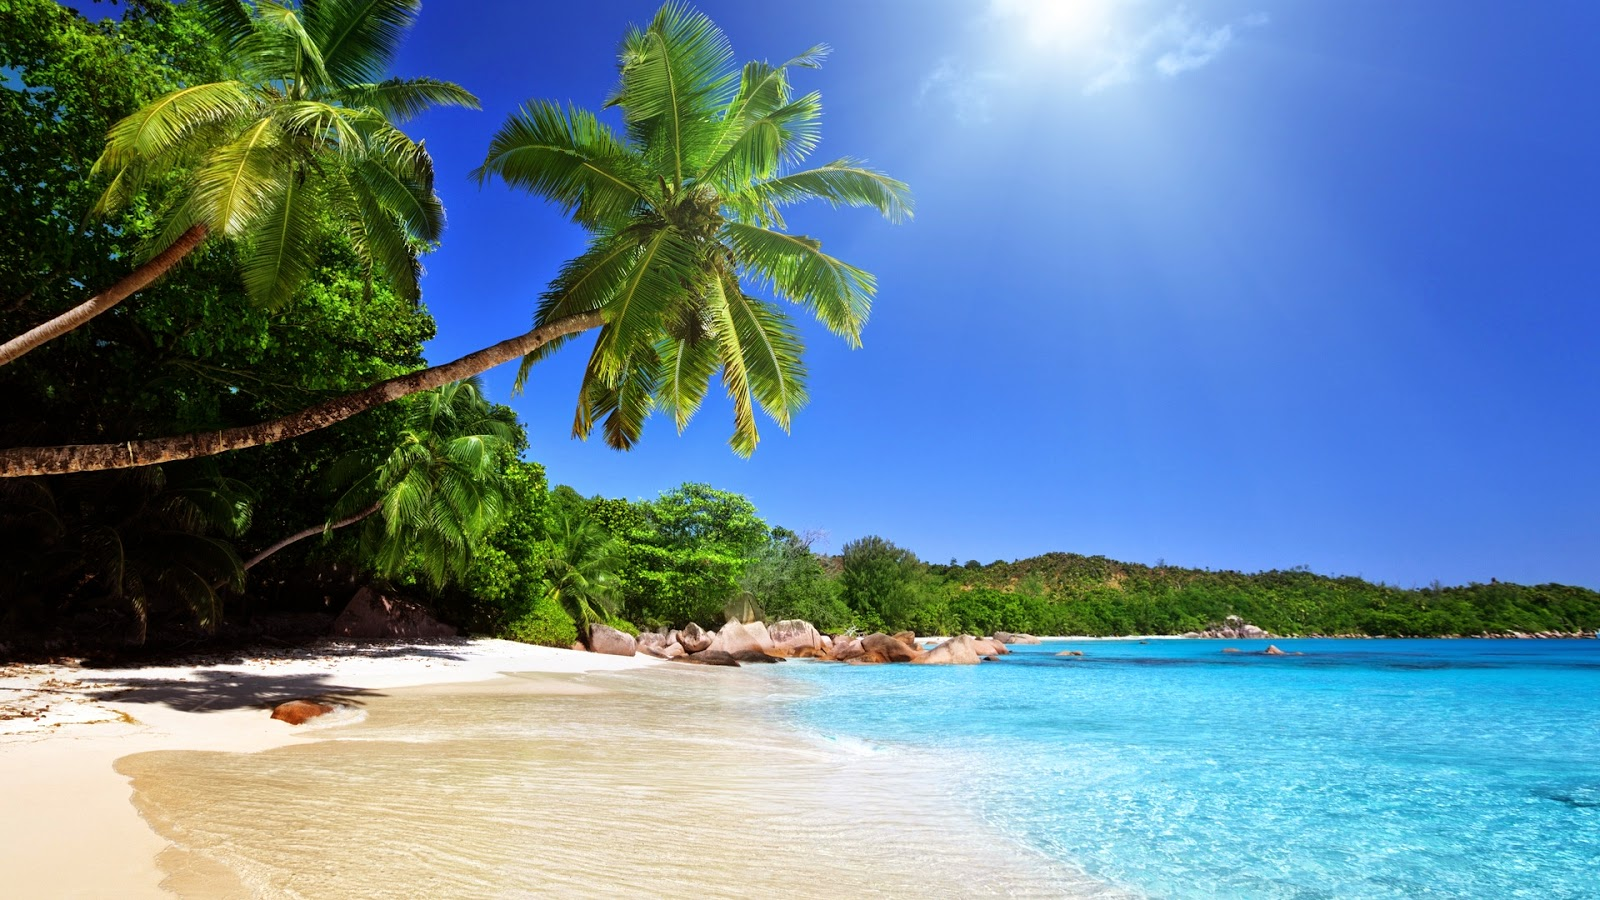 white sand beach view theme HD 1080p photography wallpaper PIXHOME 1600x900